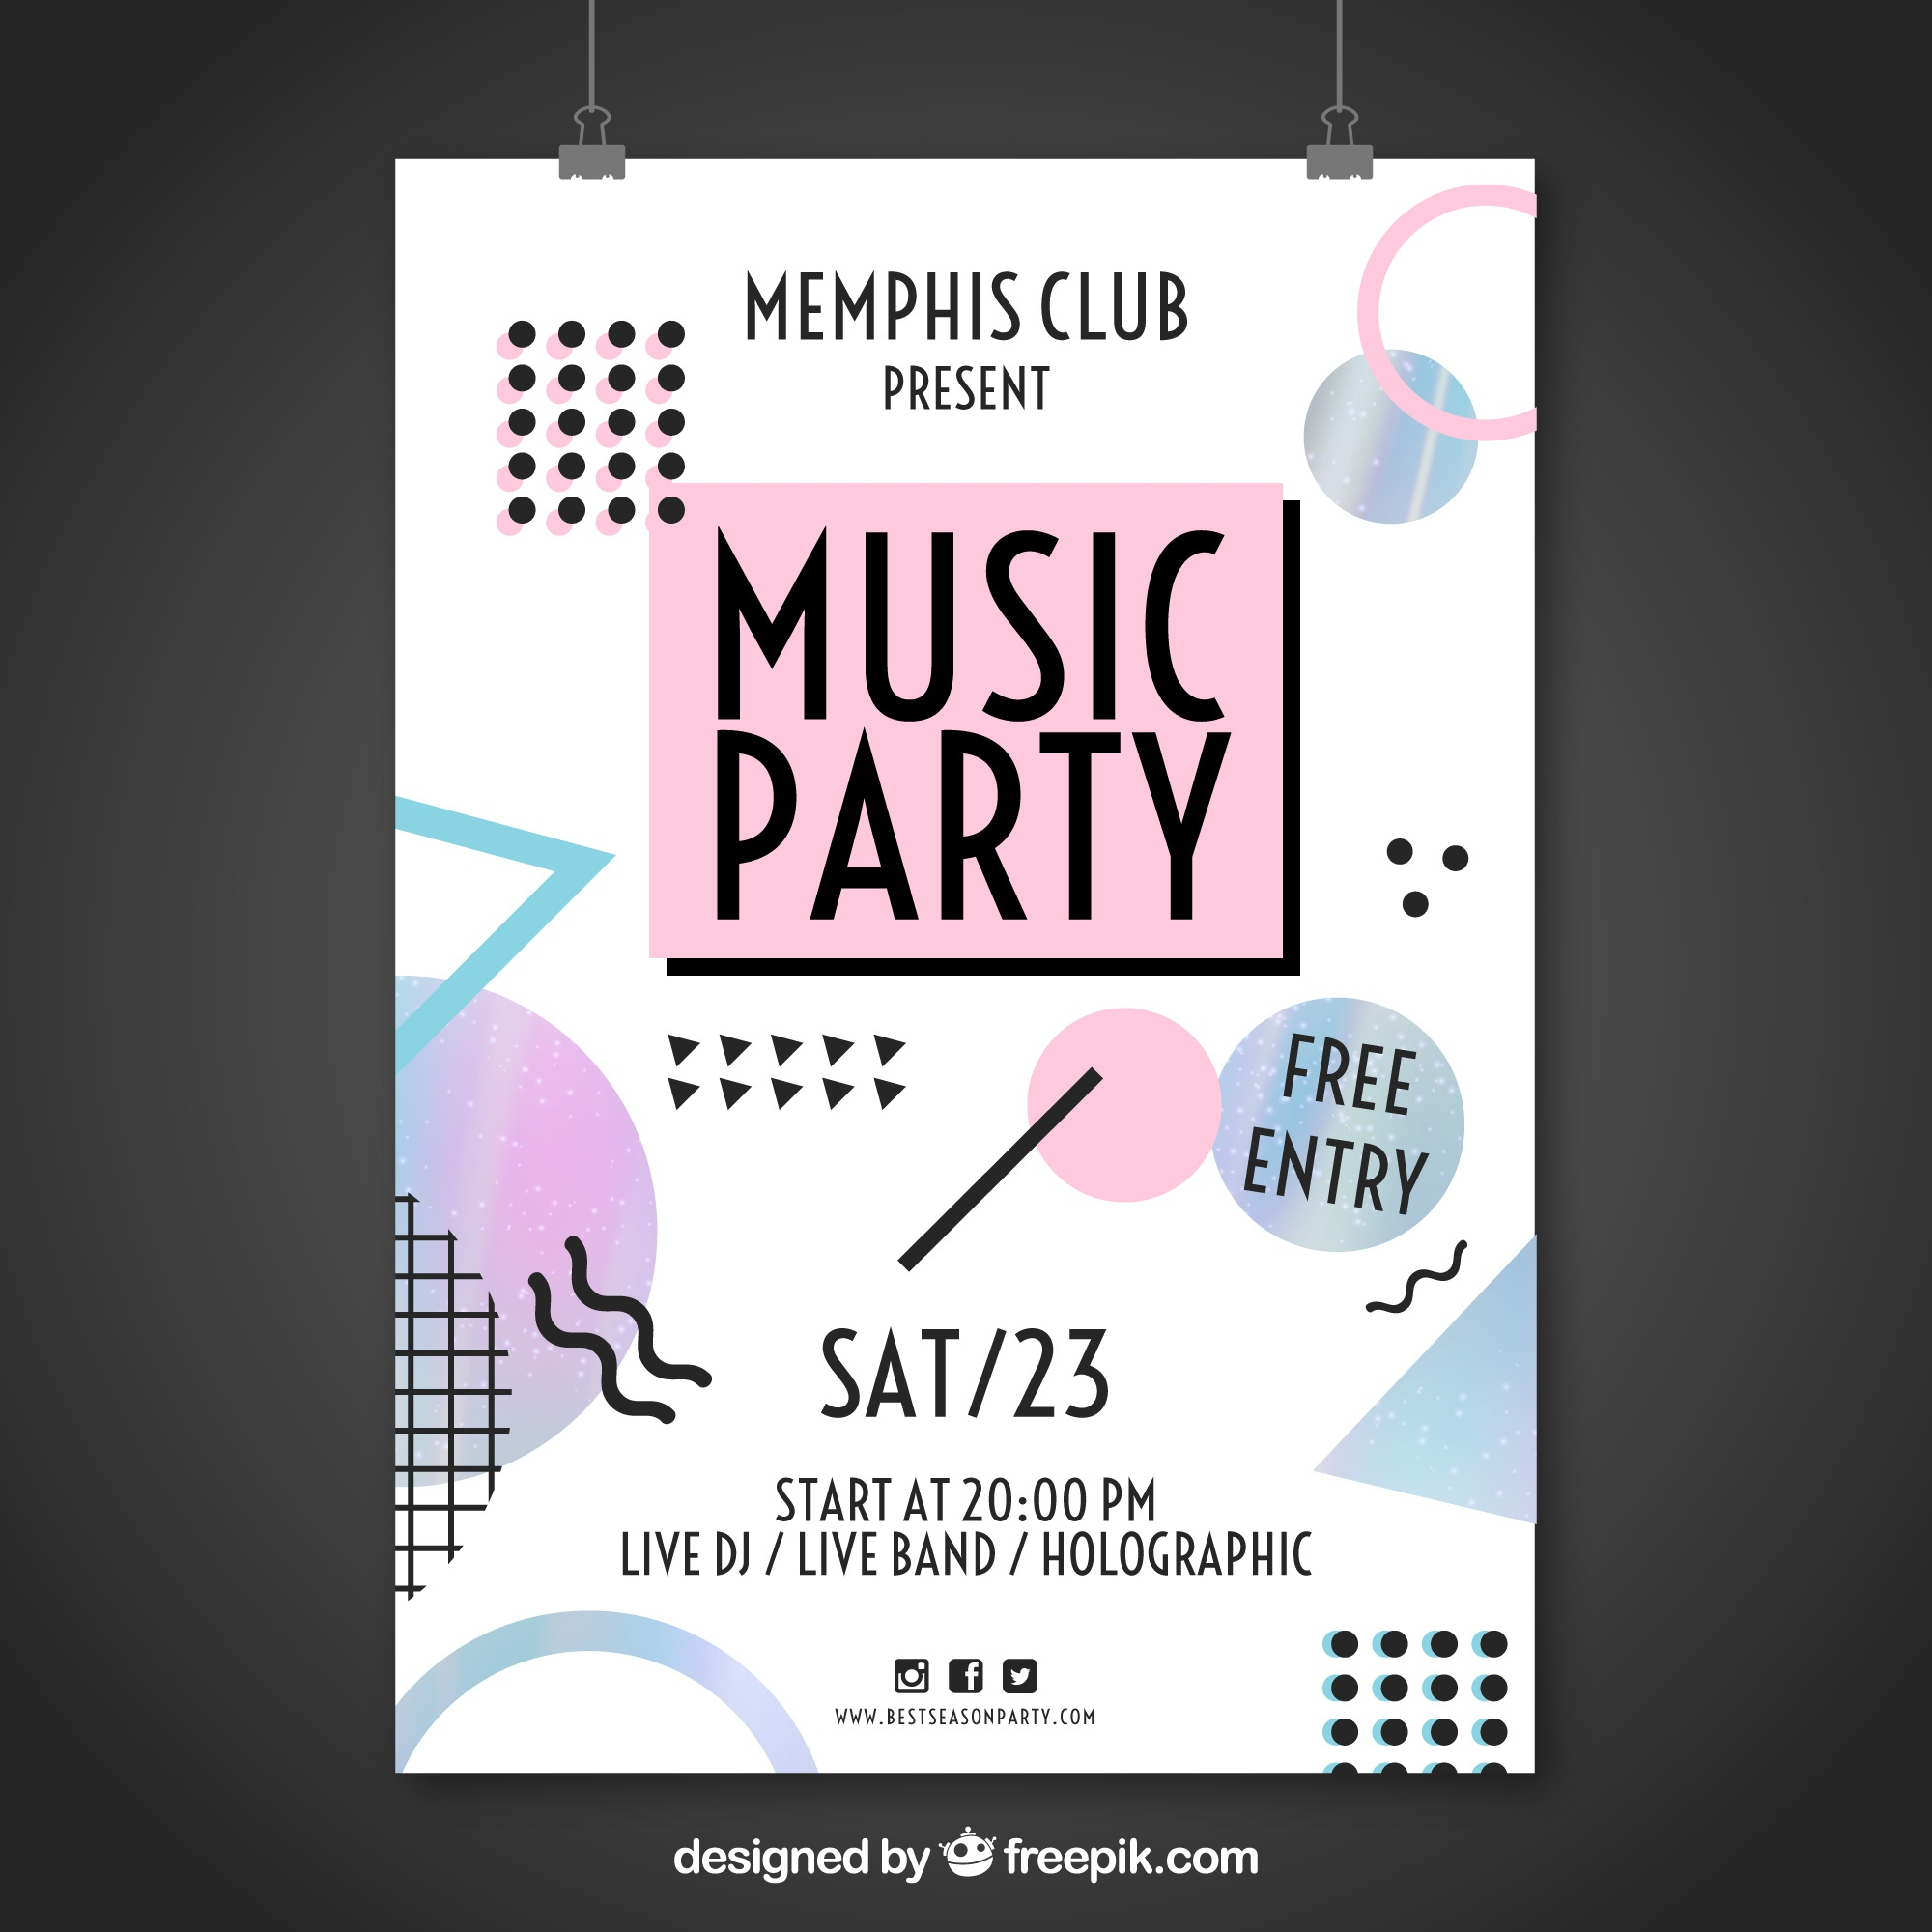 Memphis Partymusik Poster